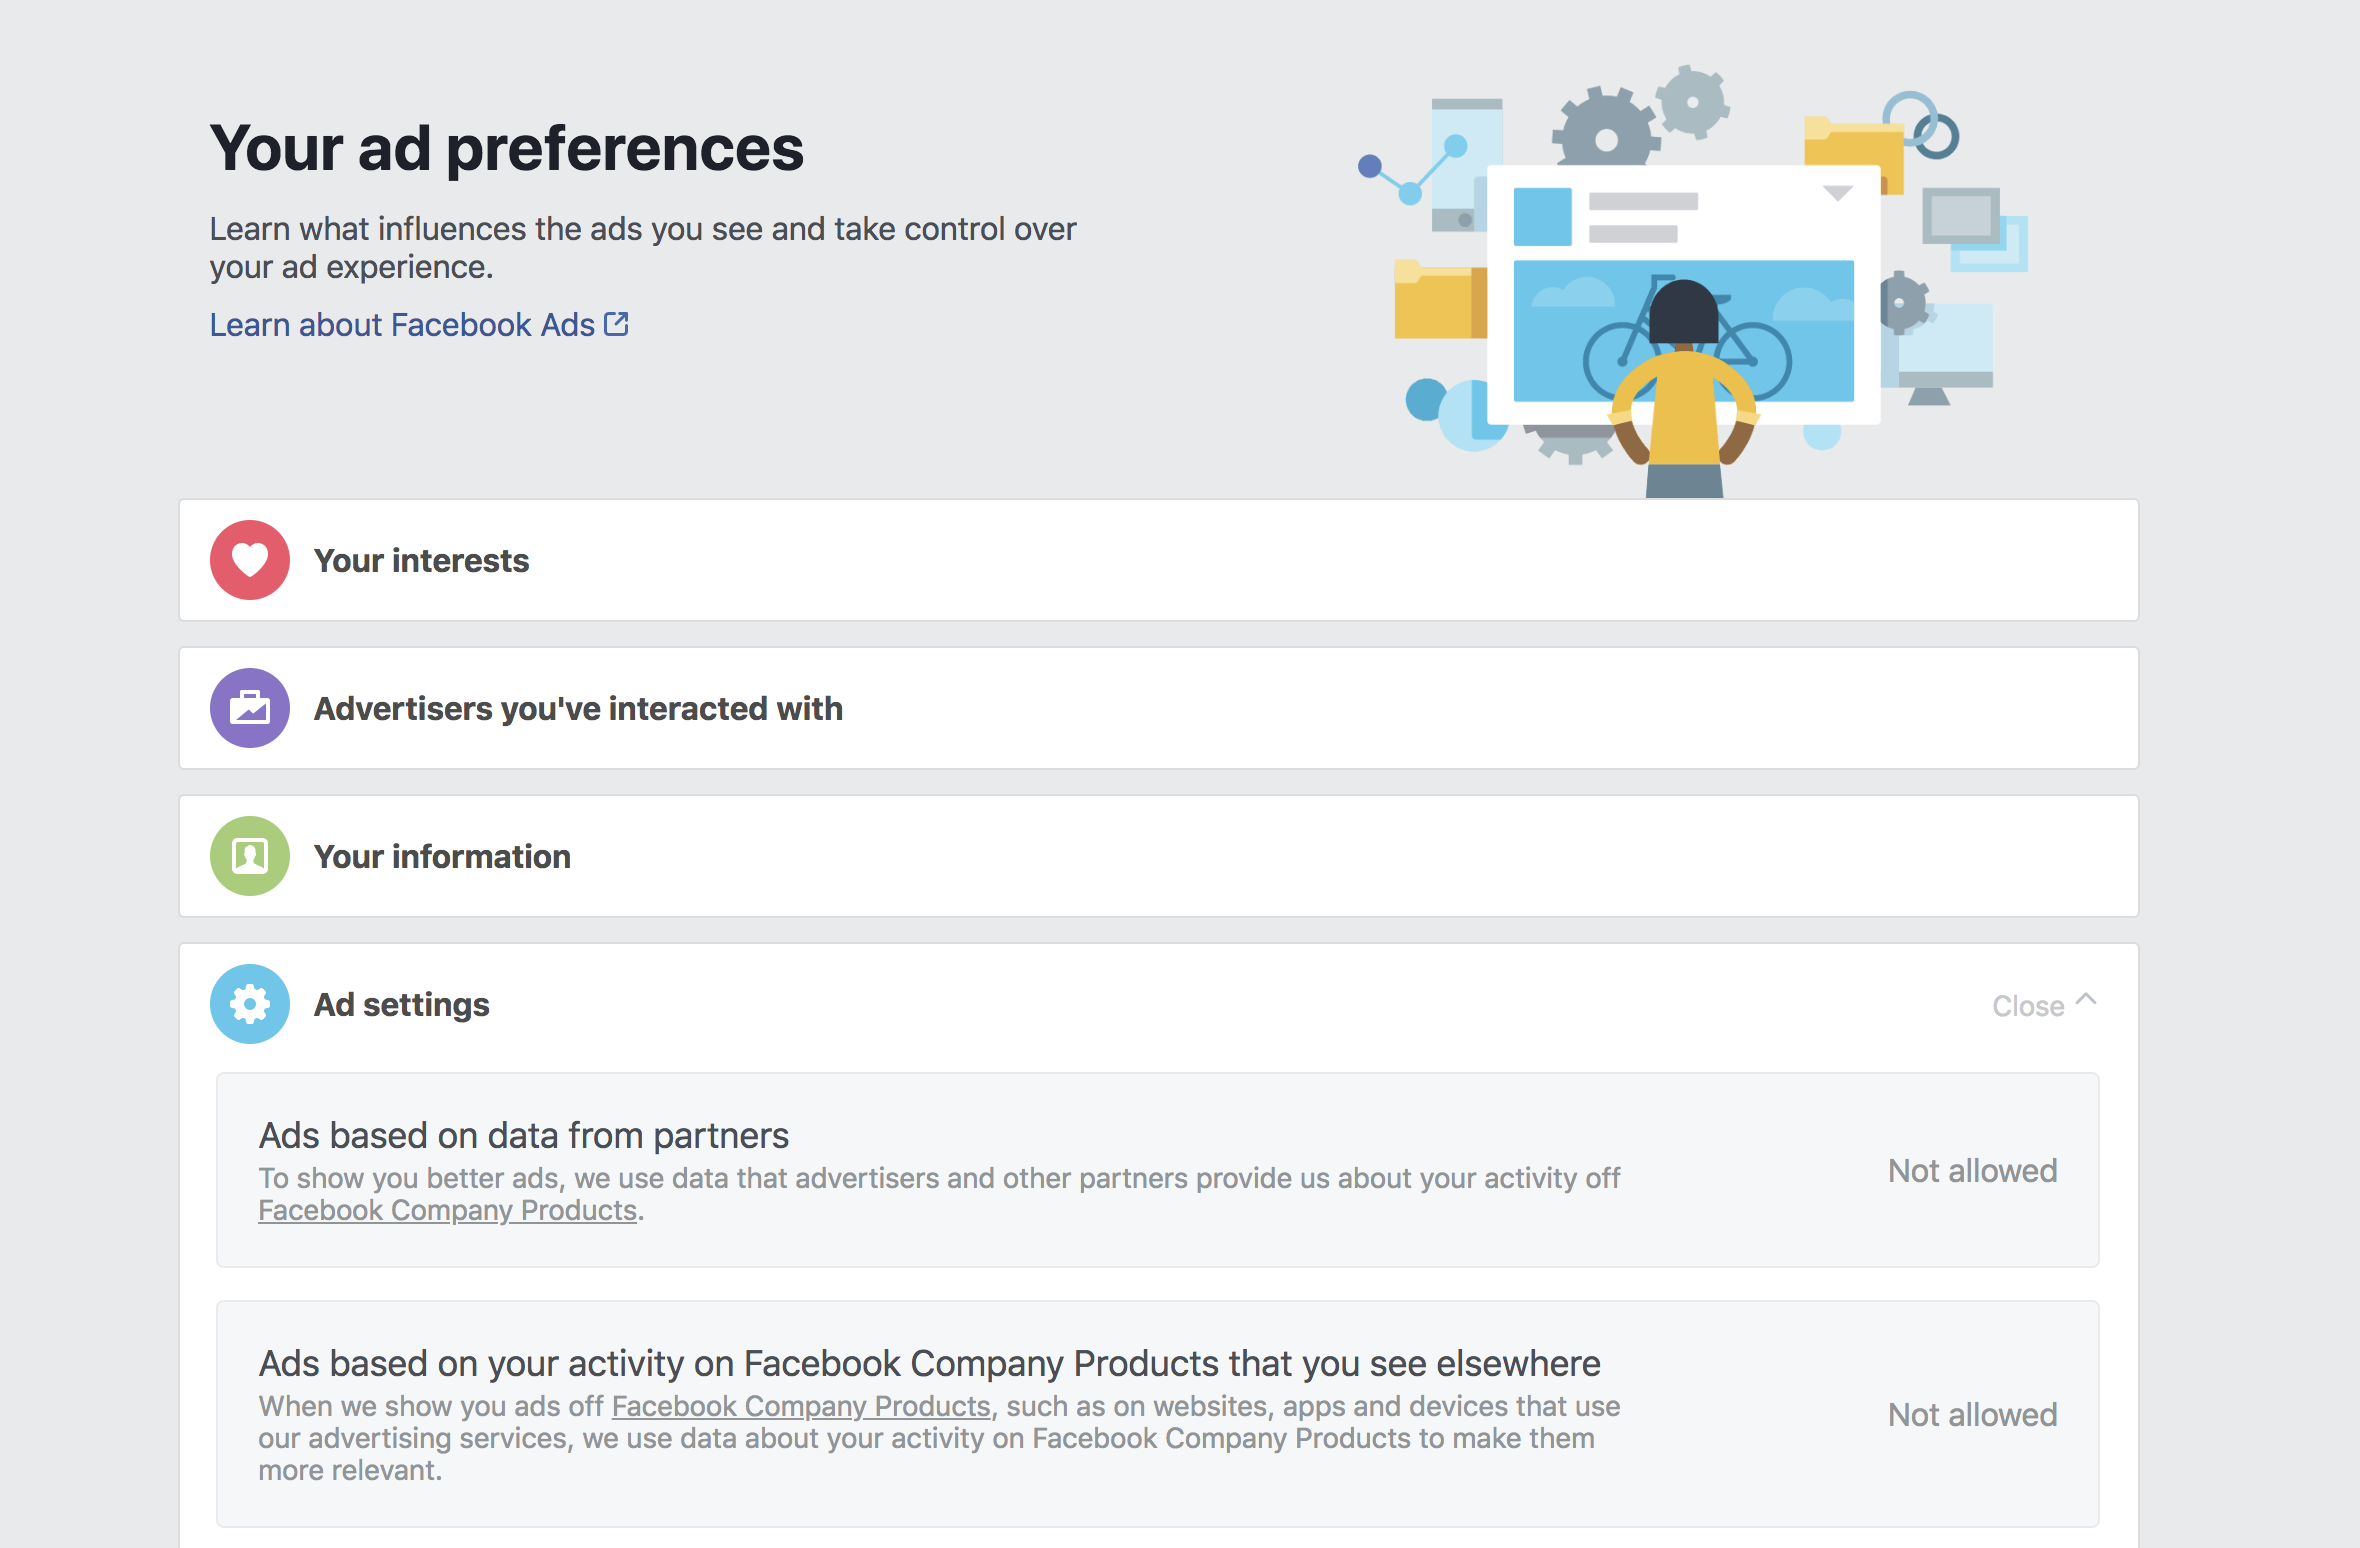 Facebook might think very differently of you than you actually are.